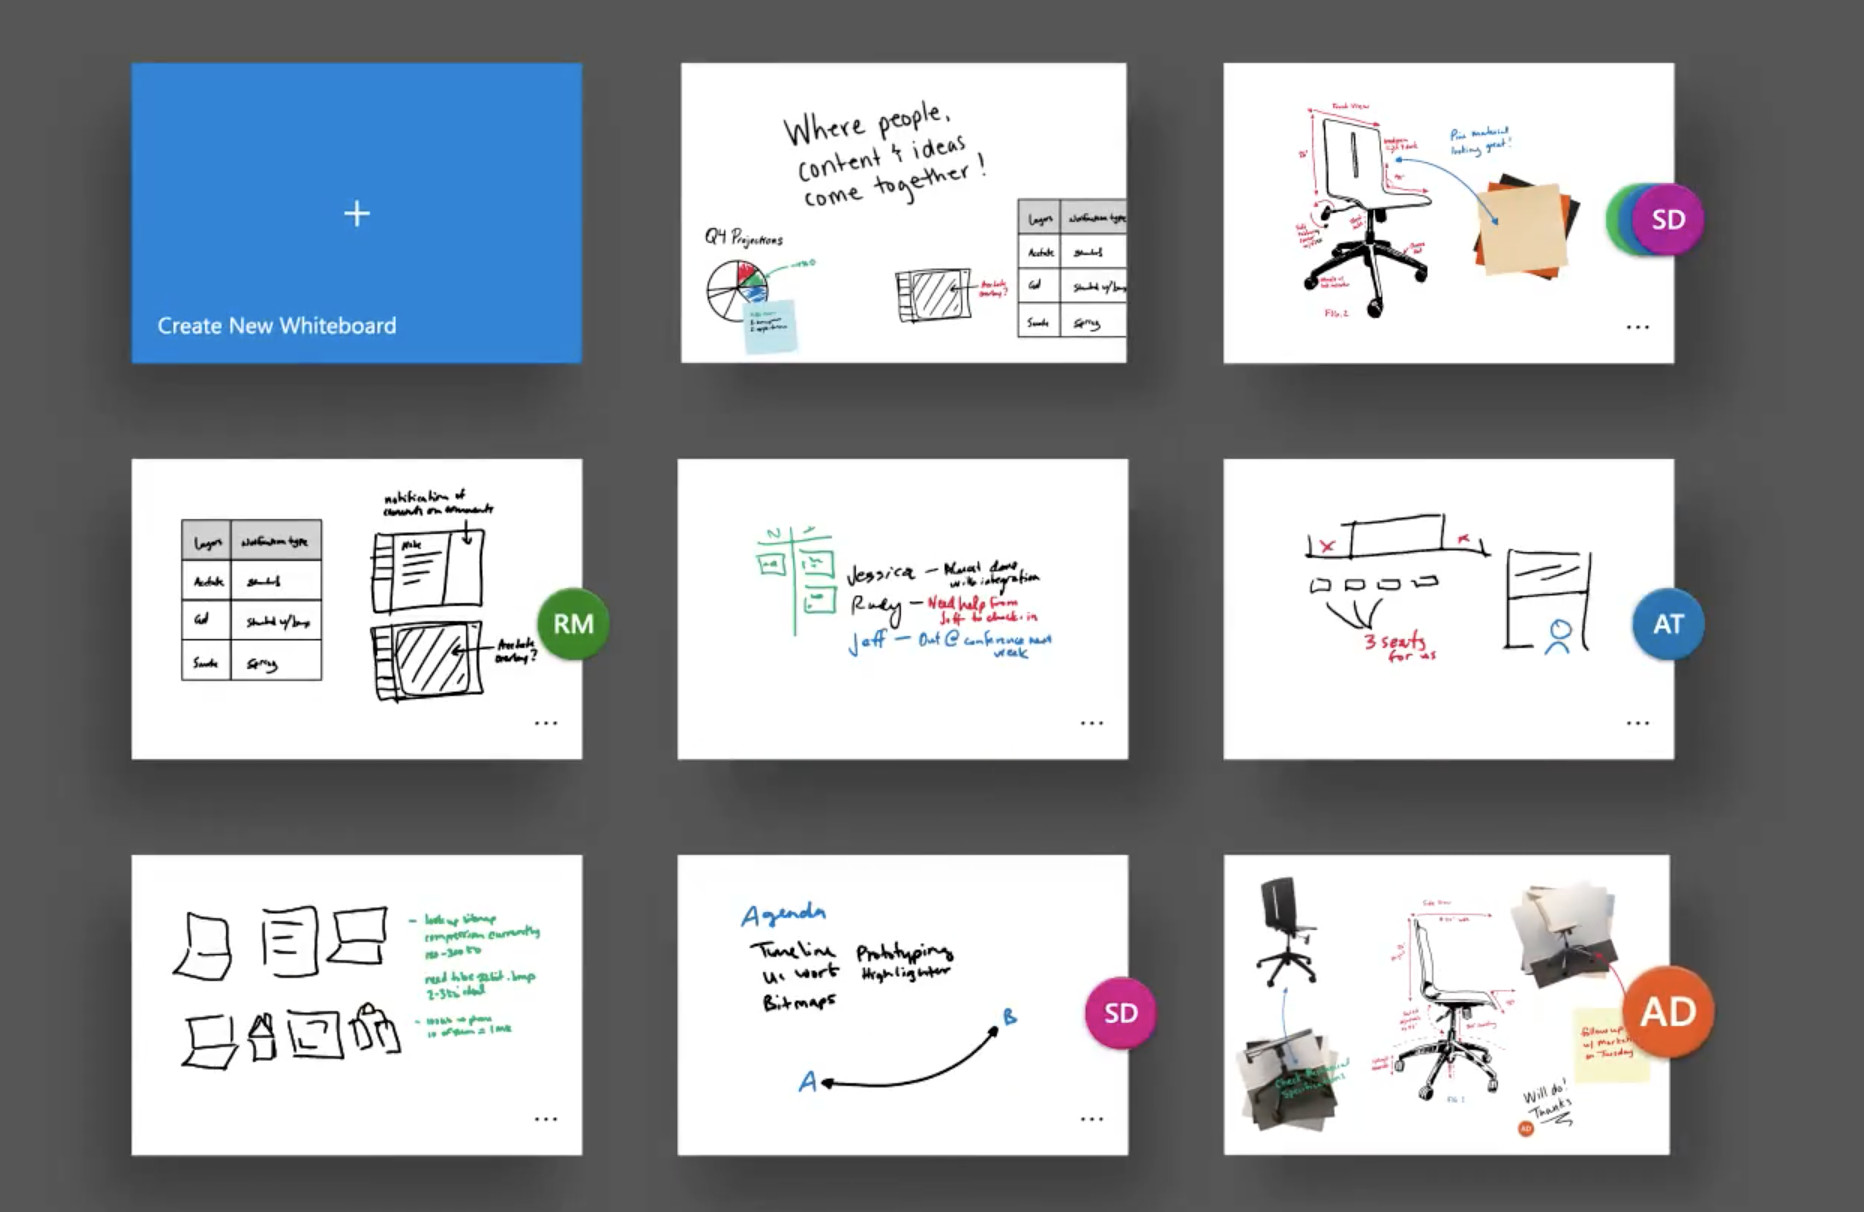 Microsoft's Whiteboard Preview app is all about collaboration